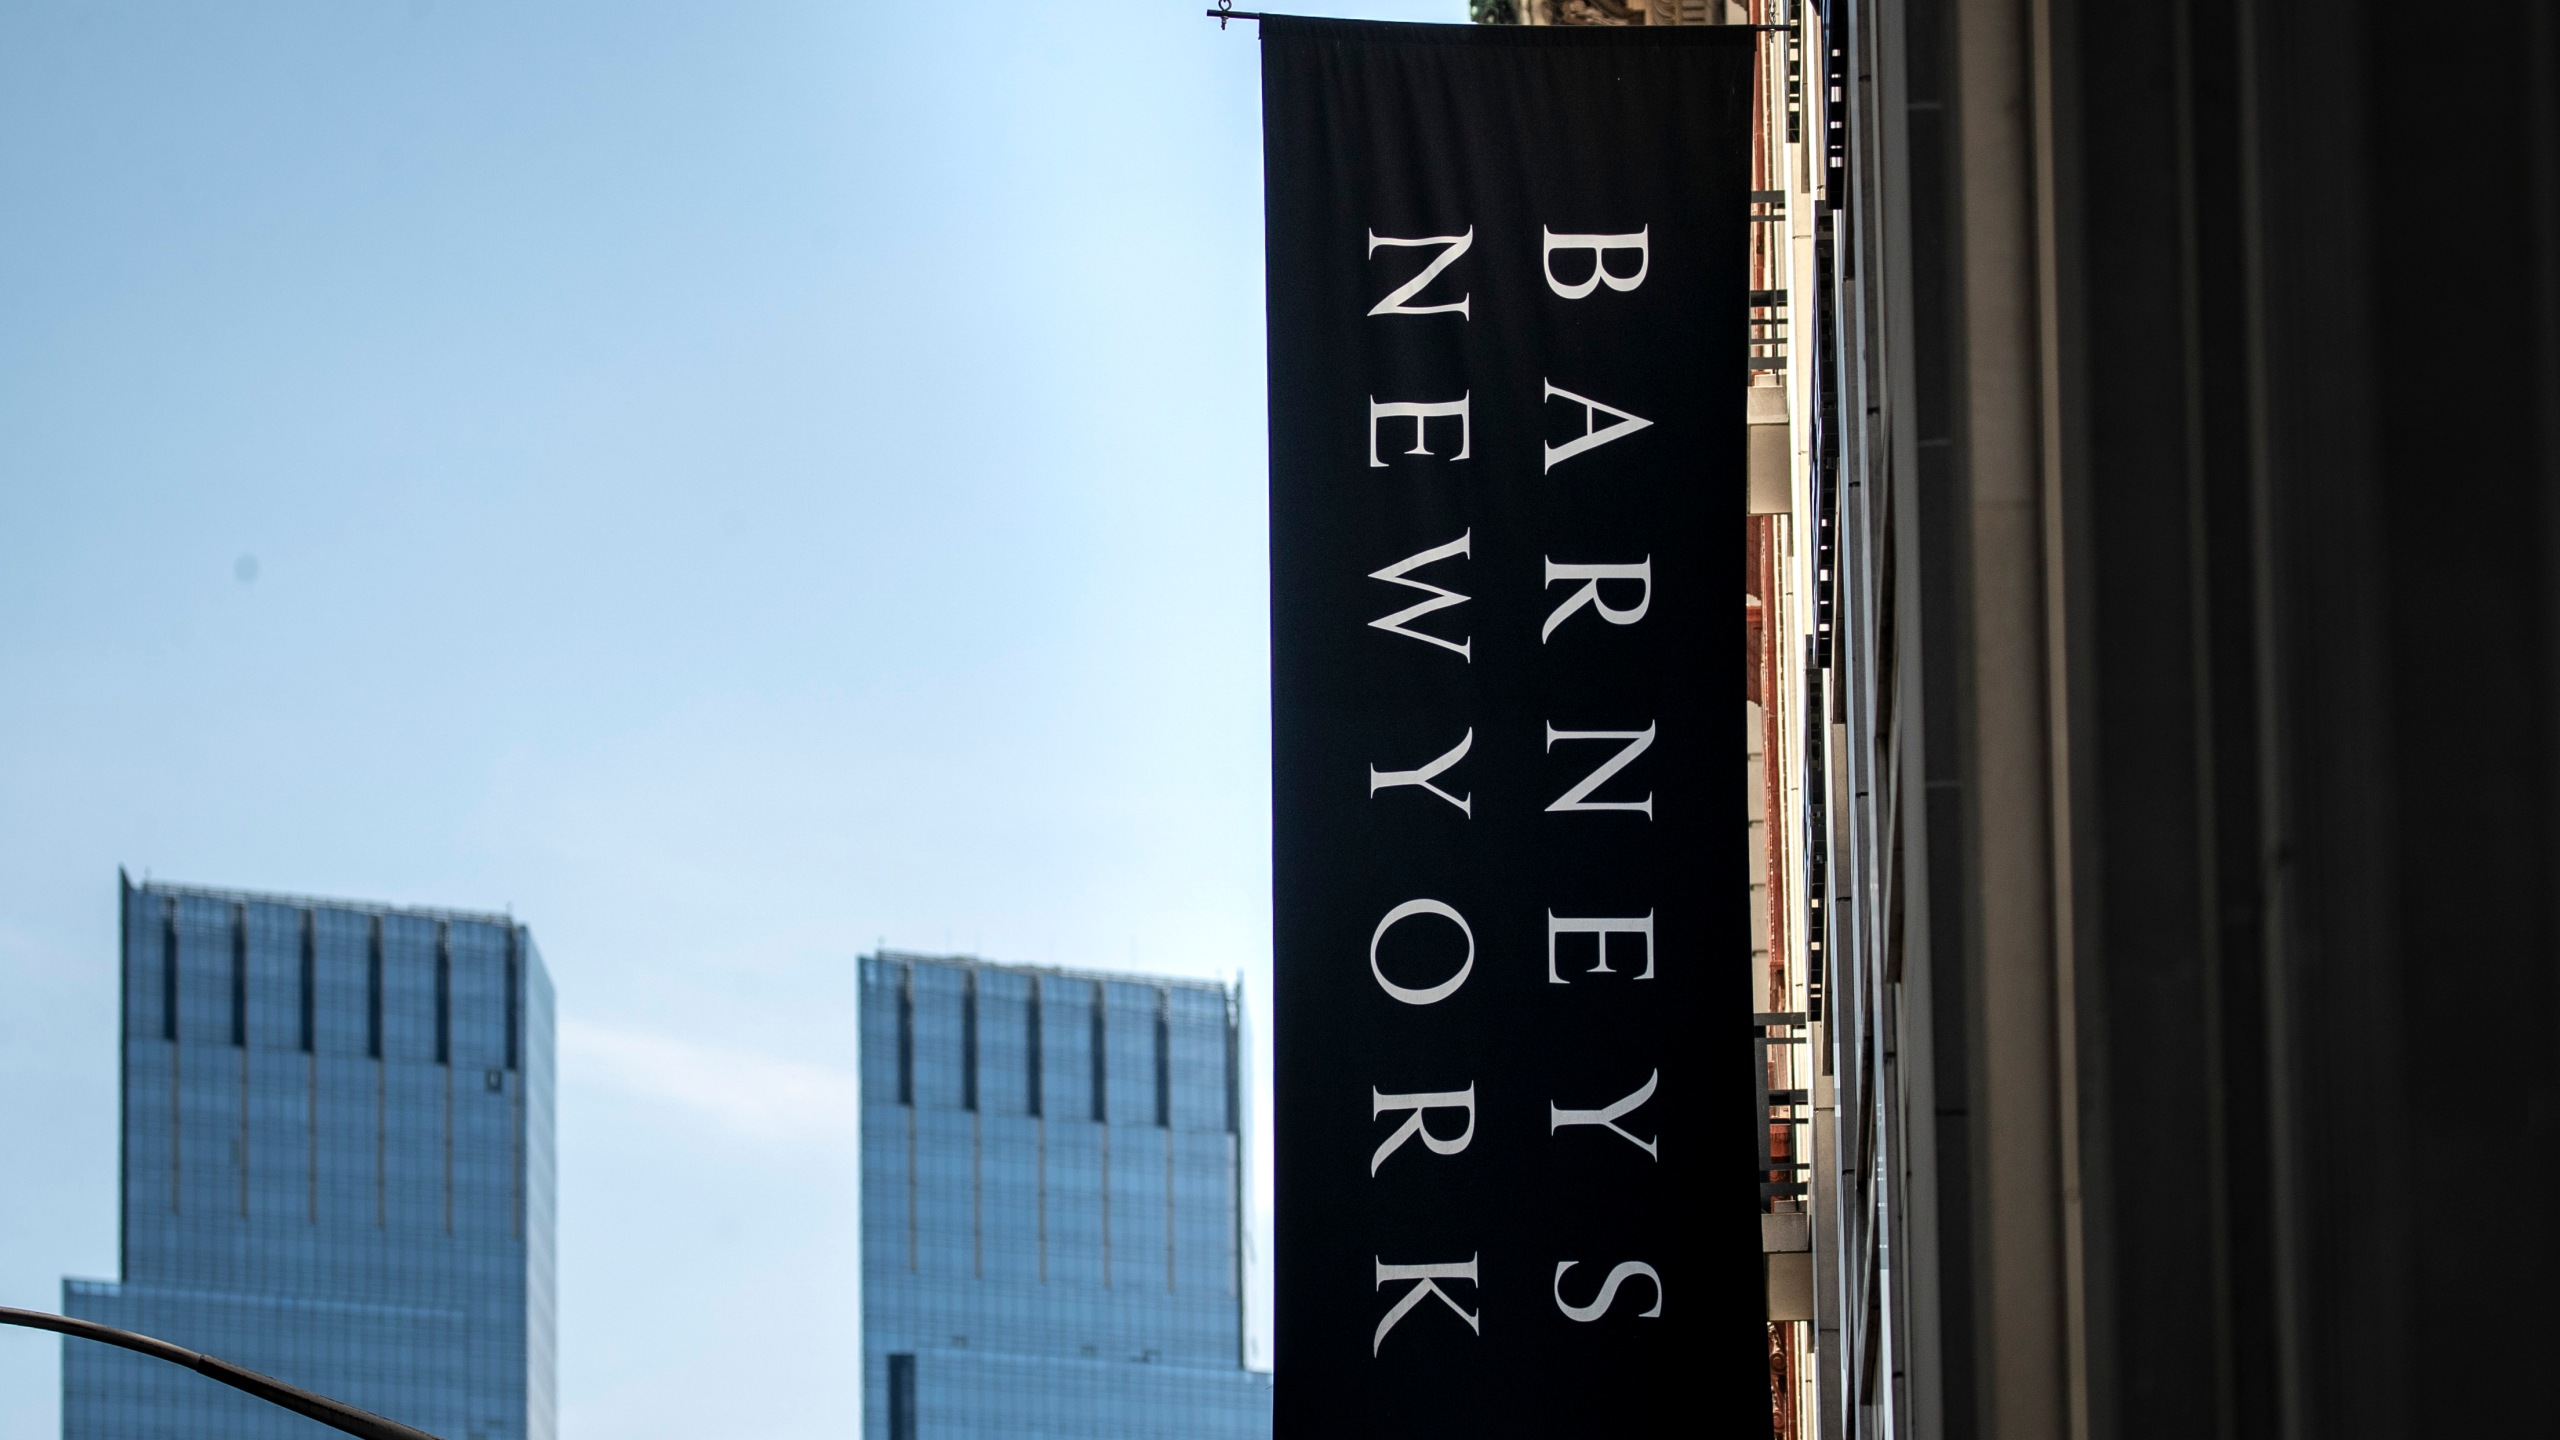 Signage for Barneys New York hangs on the side of the store in Midtown Manhattan, July 15, 2019 in New York City. (Credit: Drew Angerer/Getty Images)